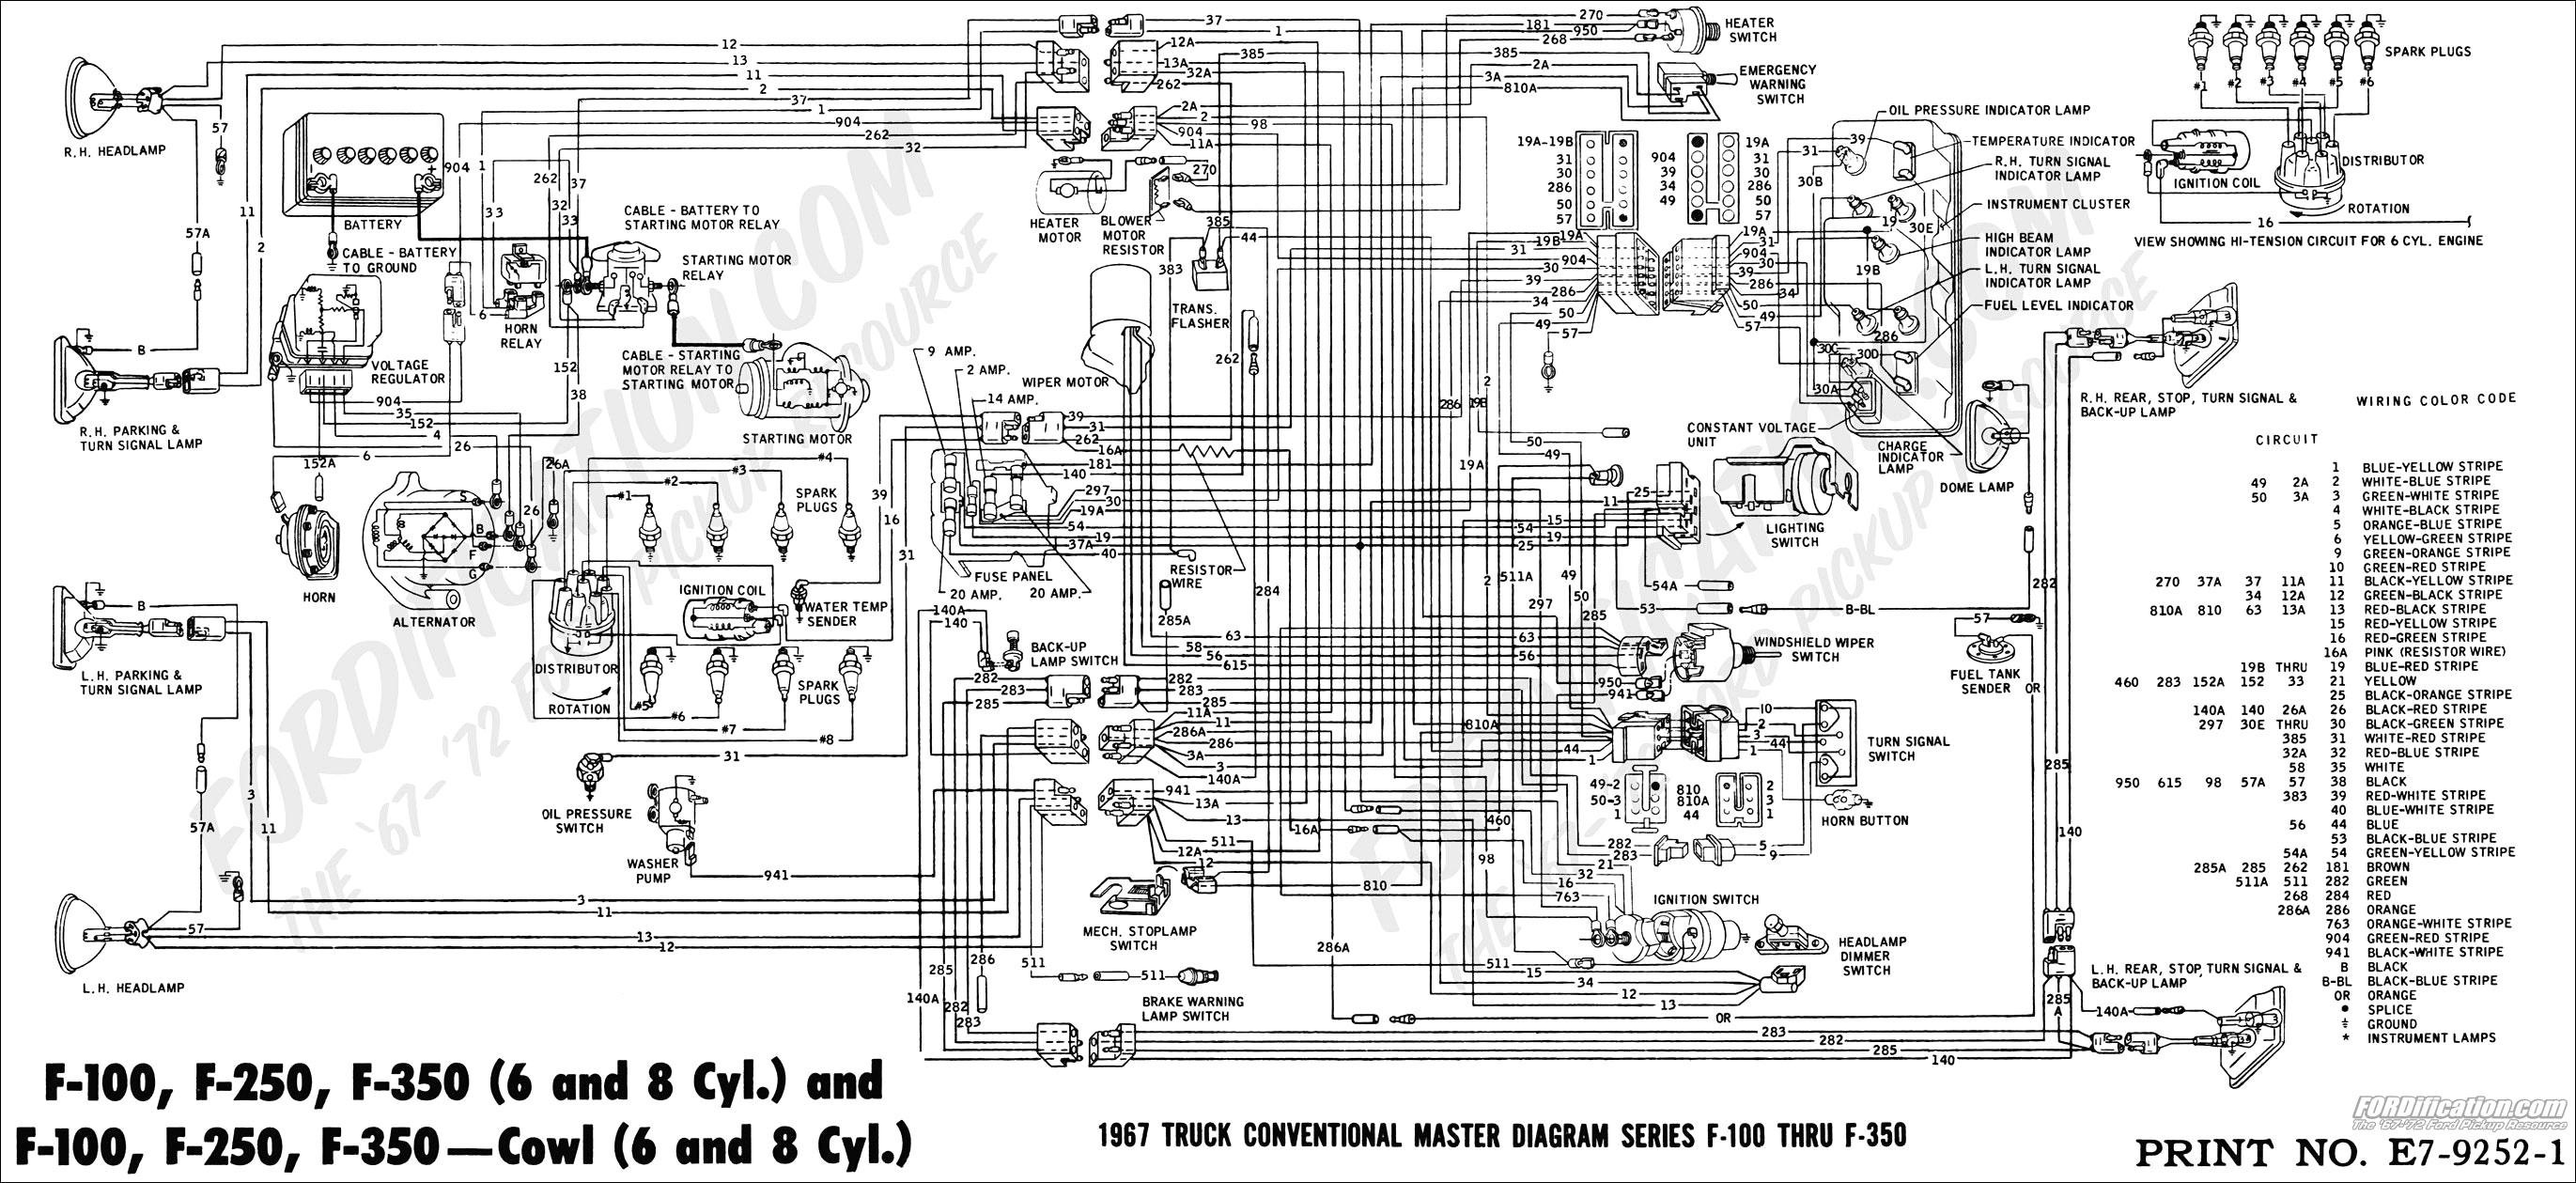 82 f150 wiring diagram wiring diagram library u2022 rh wiringboxa today Ford 3G Alternator Wiring Diagram Ford 6.0